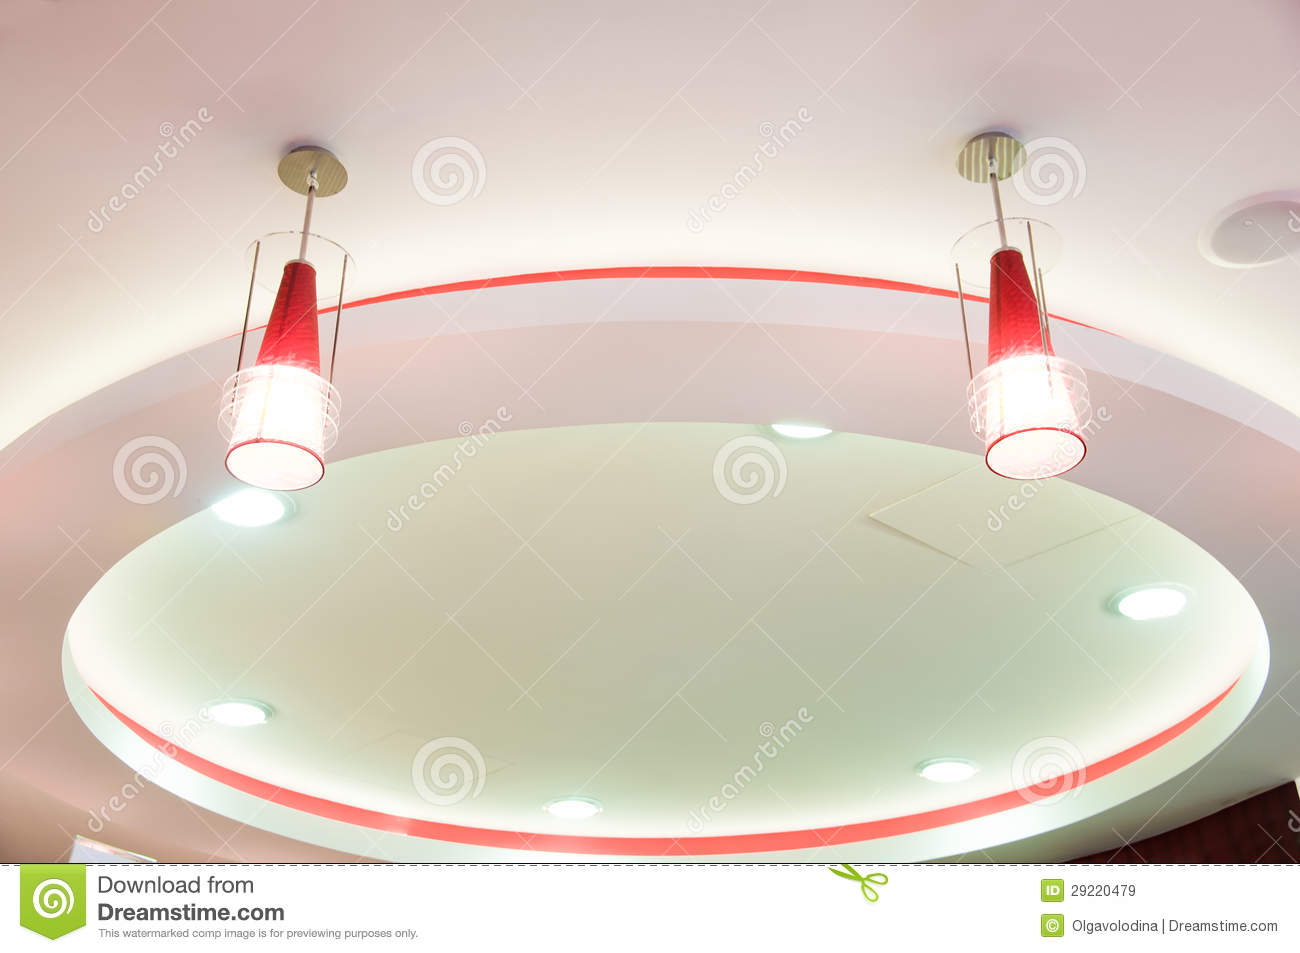 Modern Design Ceiling Royalty Free Stock Images - Image: 29220479